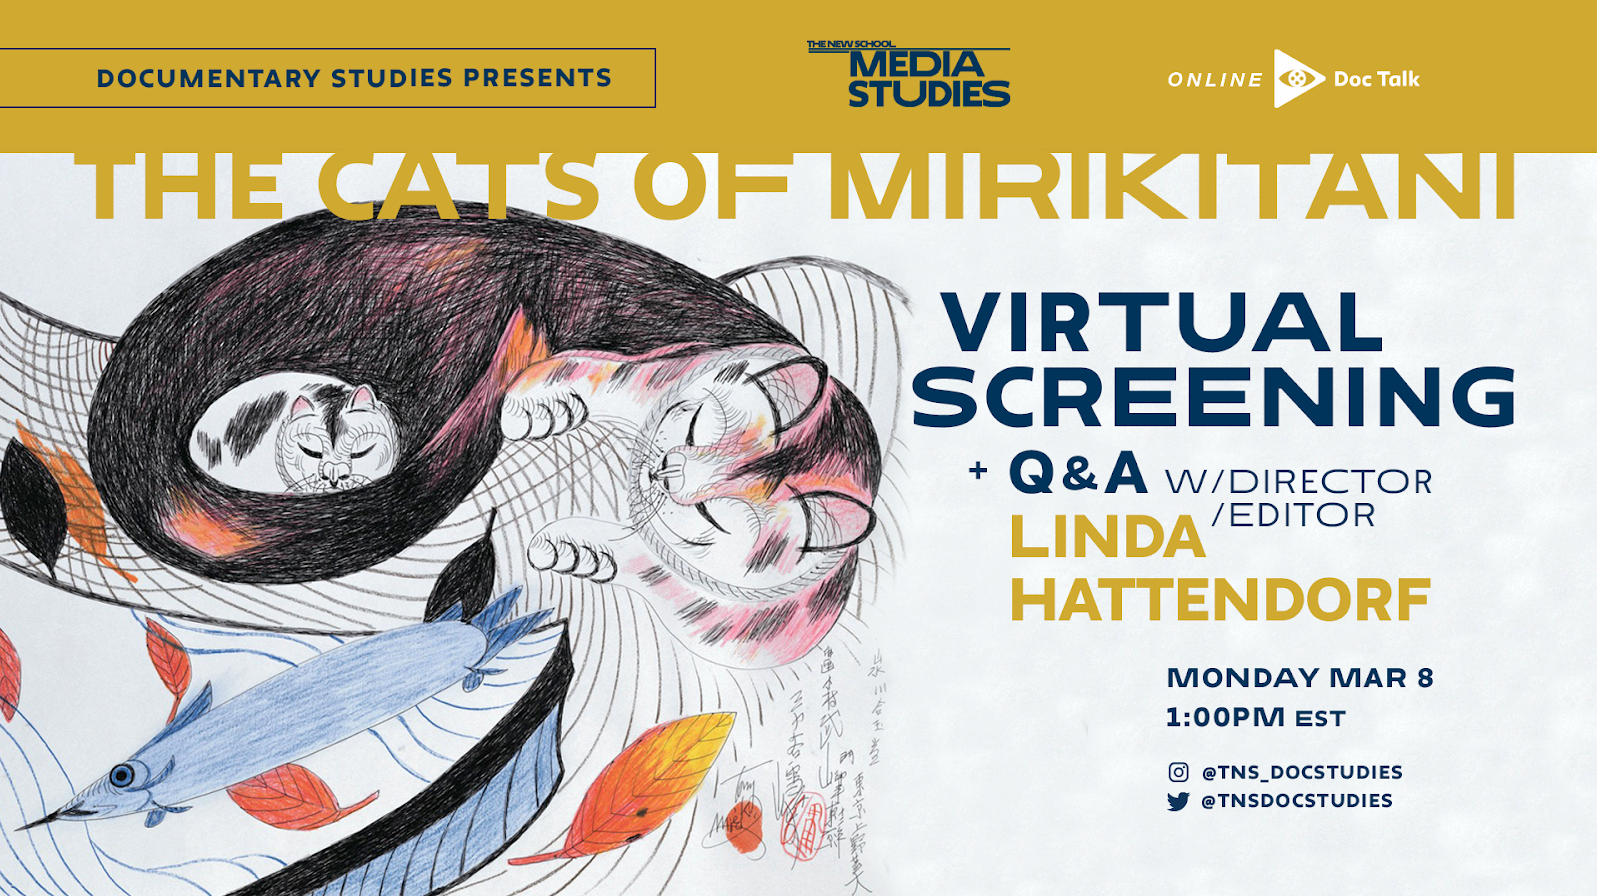 ONLINE | Doc Talk: THE CATS OF MIRIKITANI, Screening and Q&A with Linda Hattendorf